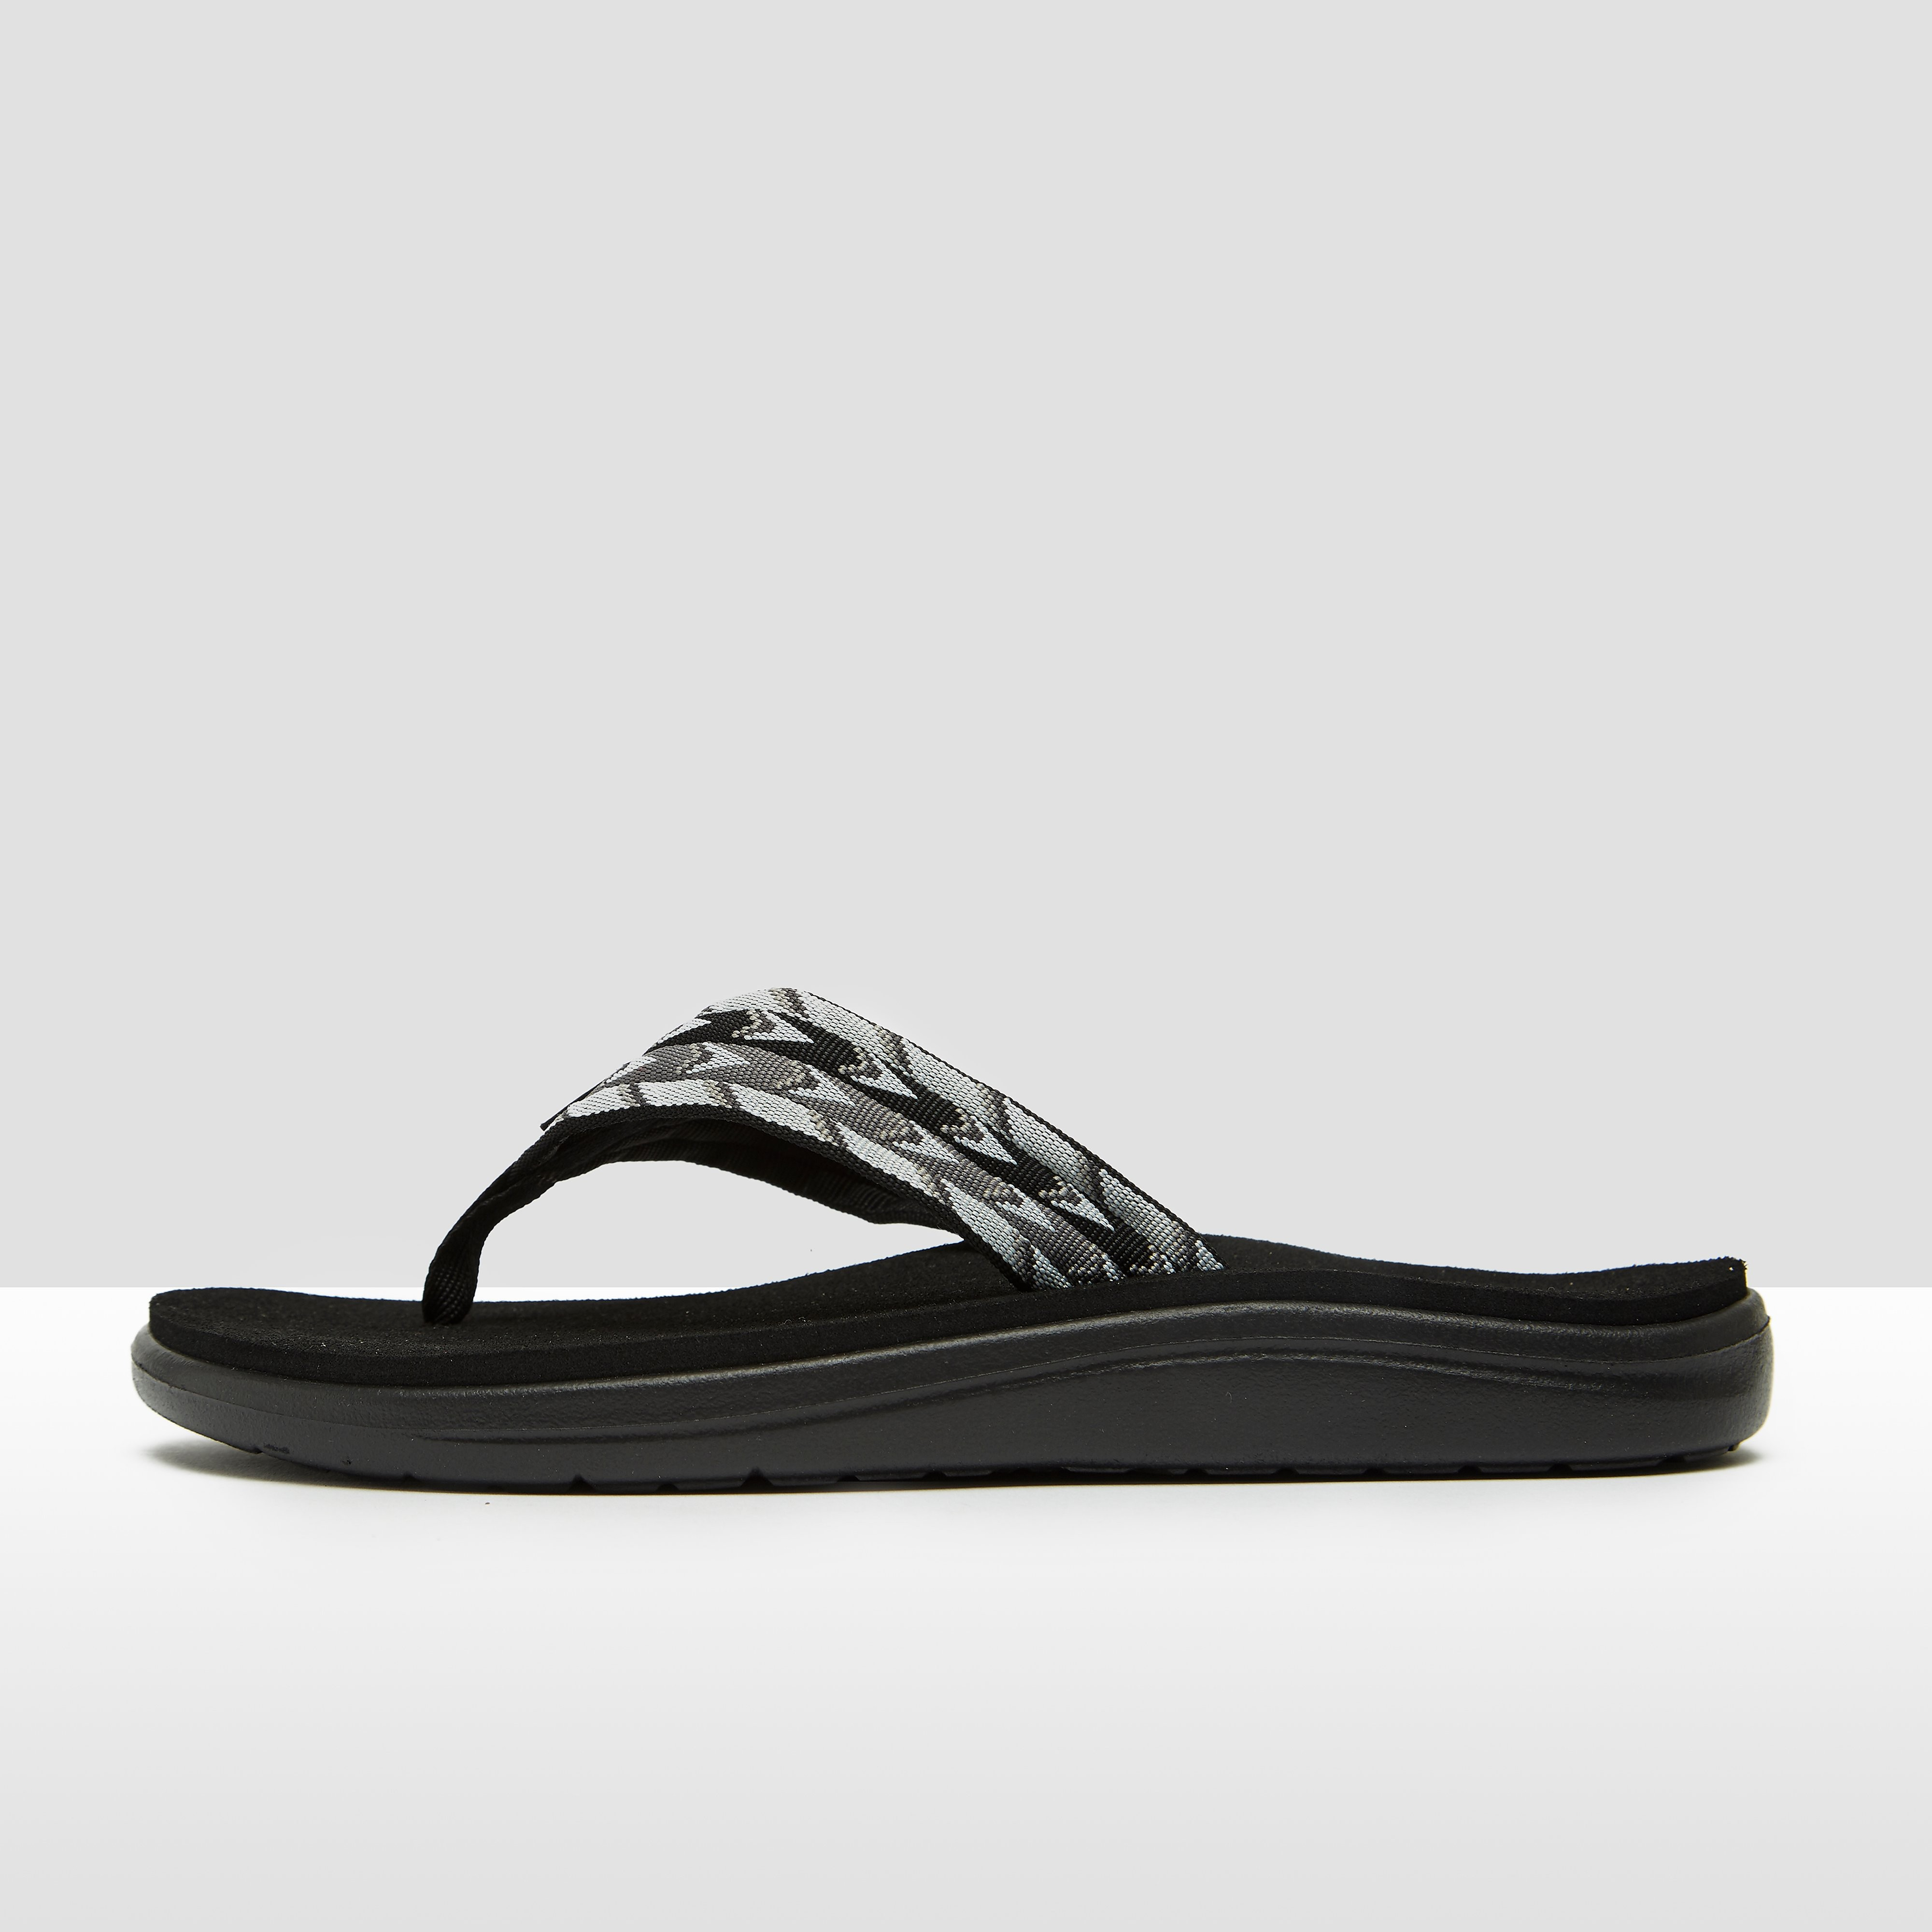 TEVA VOYA SLIPPERS ZWART HEREN